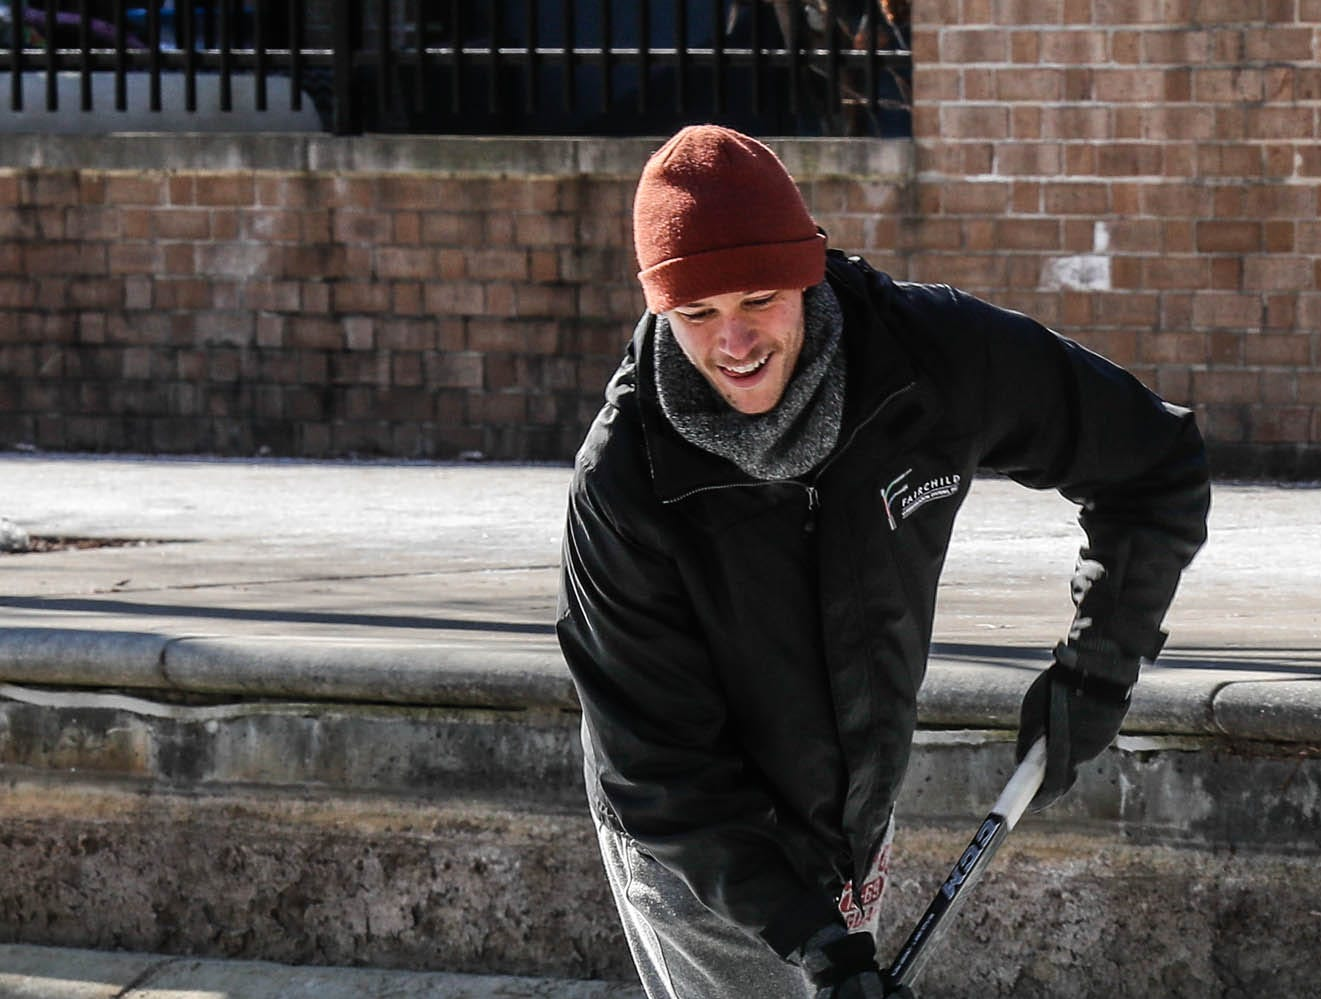 Charlie Hornett, shown here, and friends Chase Fairchild Jackson Richey get some free ice time to practice hockey skills on the downtown canal in Indianapolis on Thursday, Jan. 31, 2019.